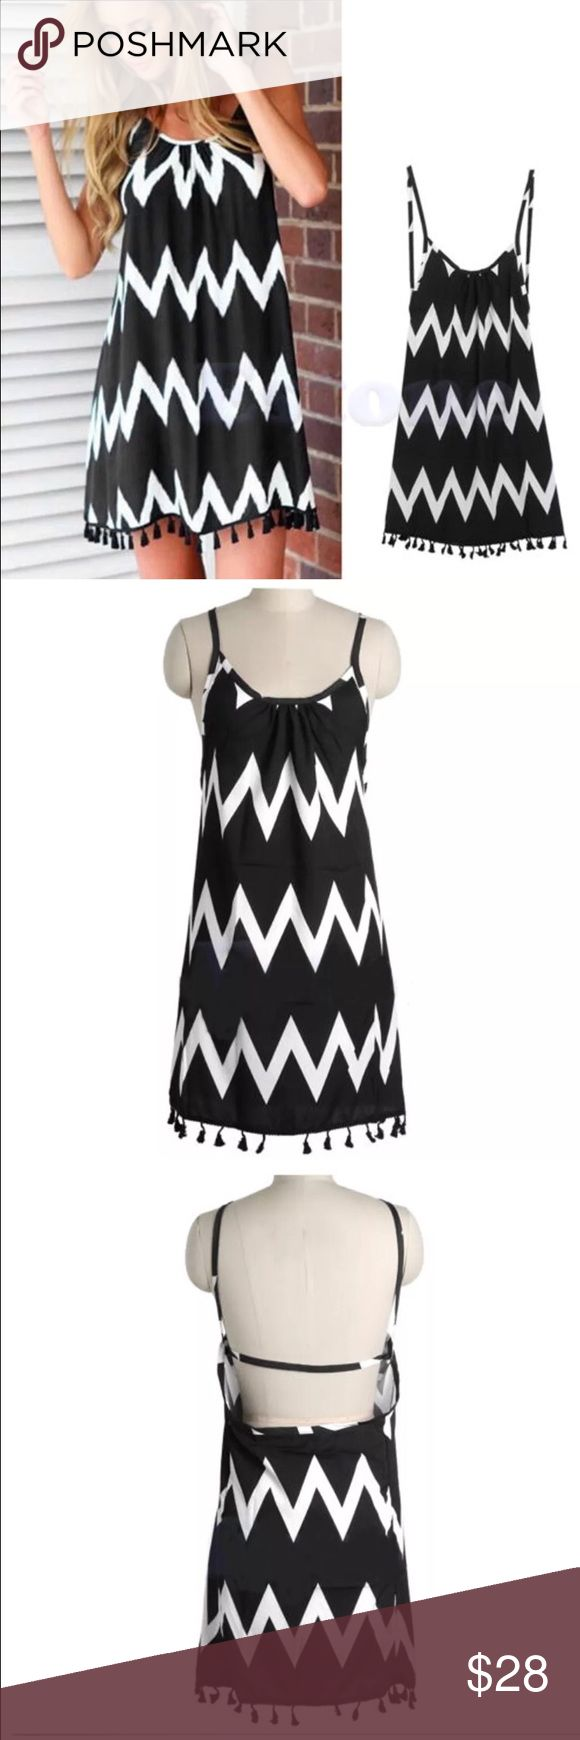 🎀PRETTY BLACK & WHITE CHEVRON PRINT DRESS (L)🎀 🎀PRETTY BLACK & WHITE CHEVRON PRINT DRESS IN SIZE L🎀 MADE IN CHINA. MAY RUN SMALL SO IT COULD FIT A MEDIUM OR A LARGE! THIS DRESS IS SOMEWHAT SHEER. CAN BE WORN ALONE, WITH A SLIP OR AS A SWIMSUIT COVERUP! CAN BE DRESSED UP OR CAN BE WORN CASUALLY! WHATEVER THE CASE IT IS A BEAUTIFUL DRESS! Dresses